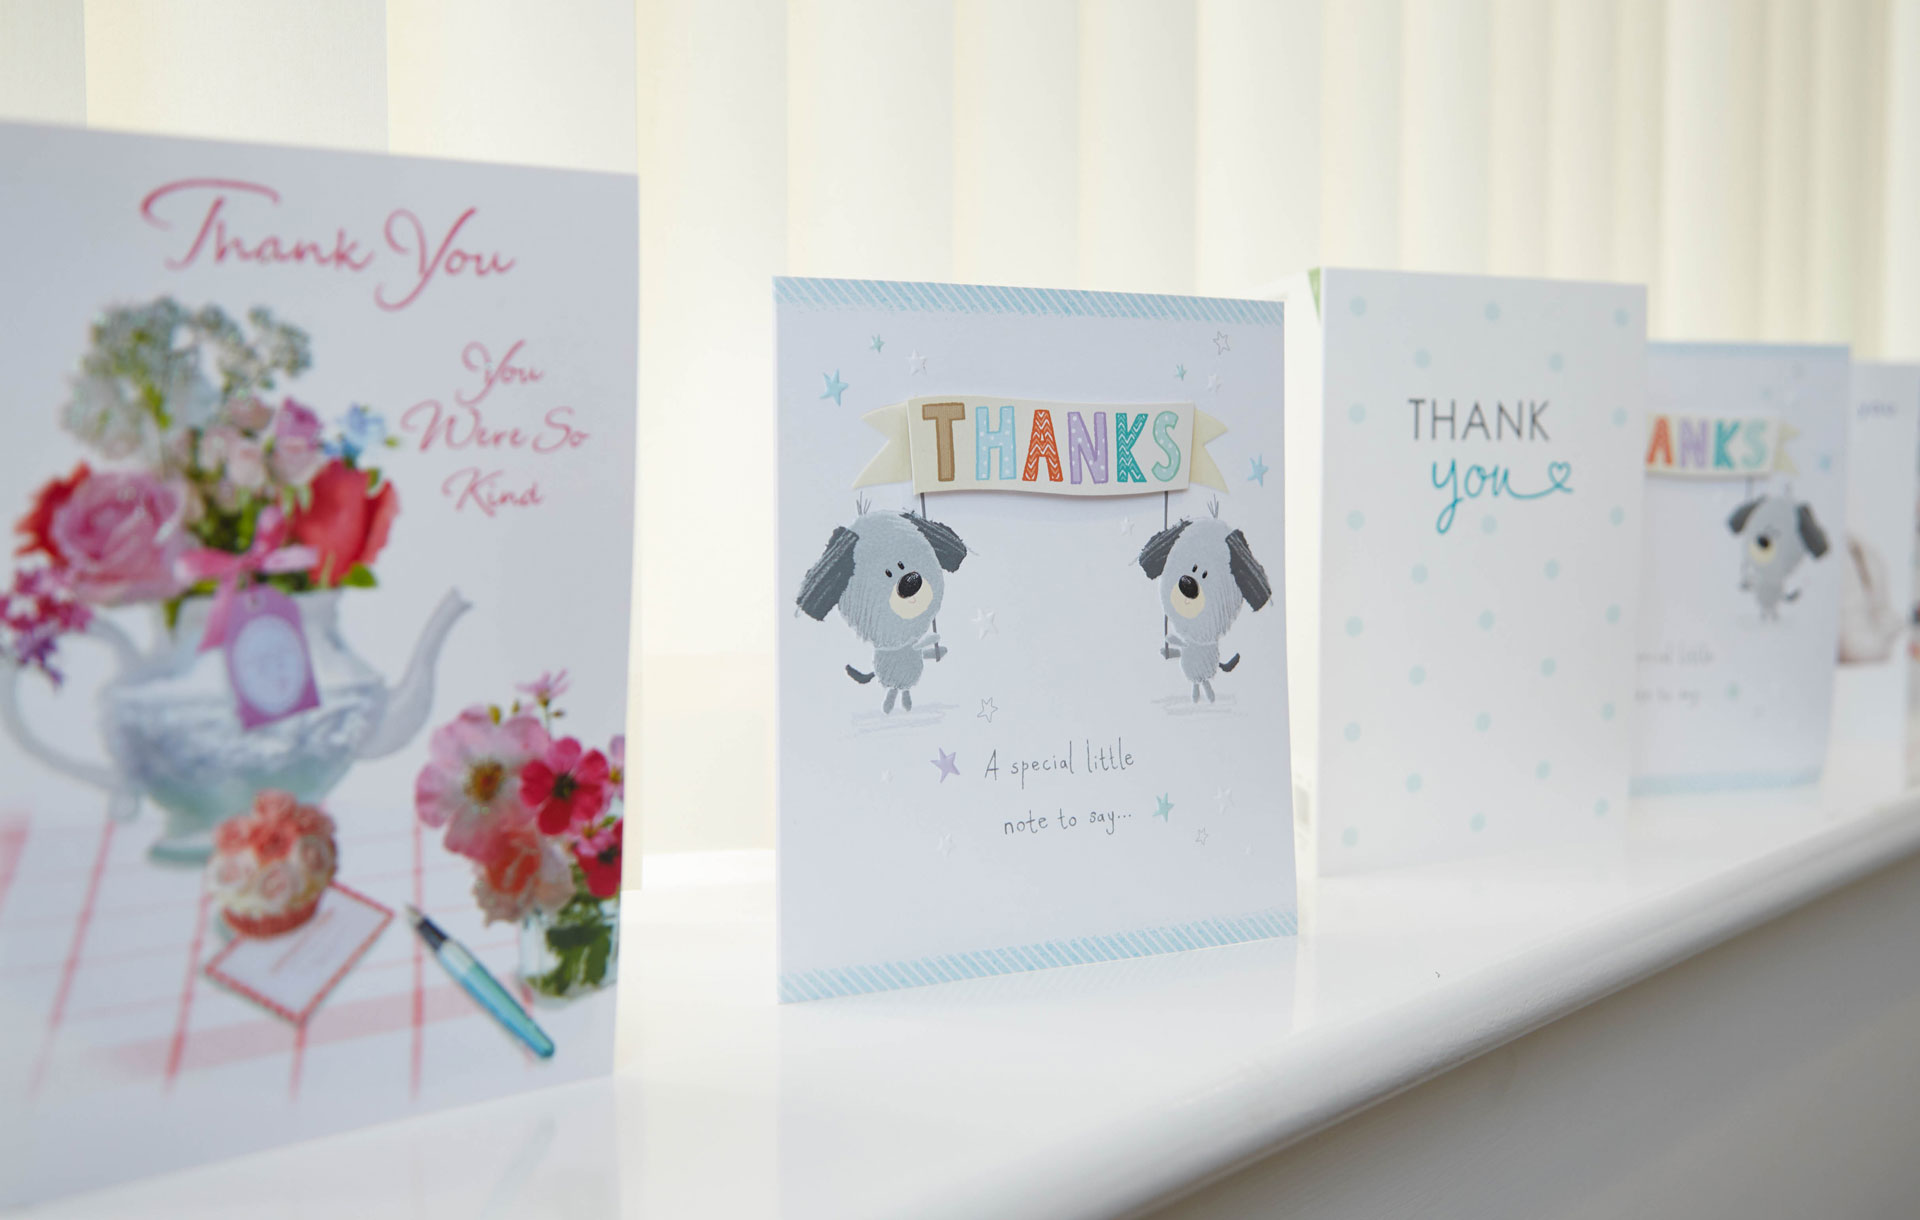 Thank you cards at vets